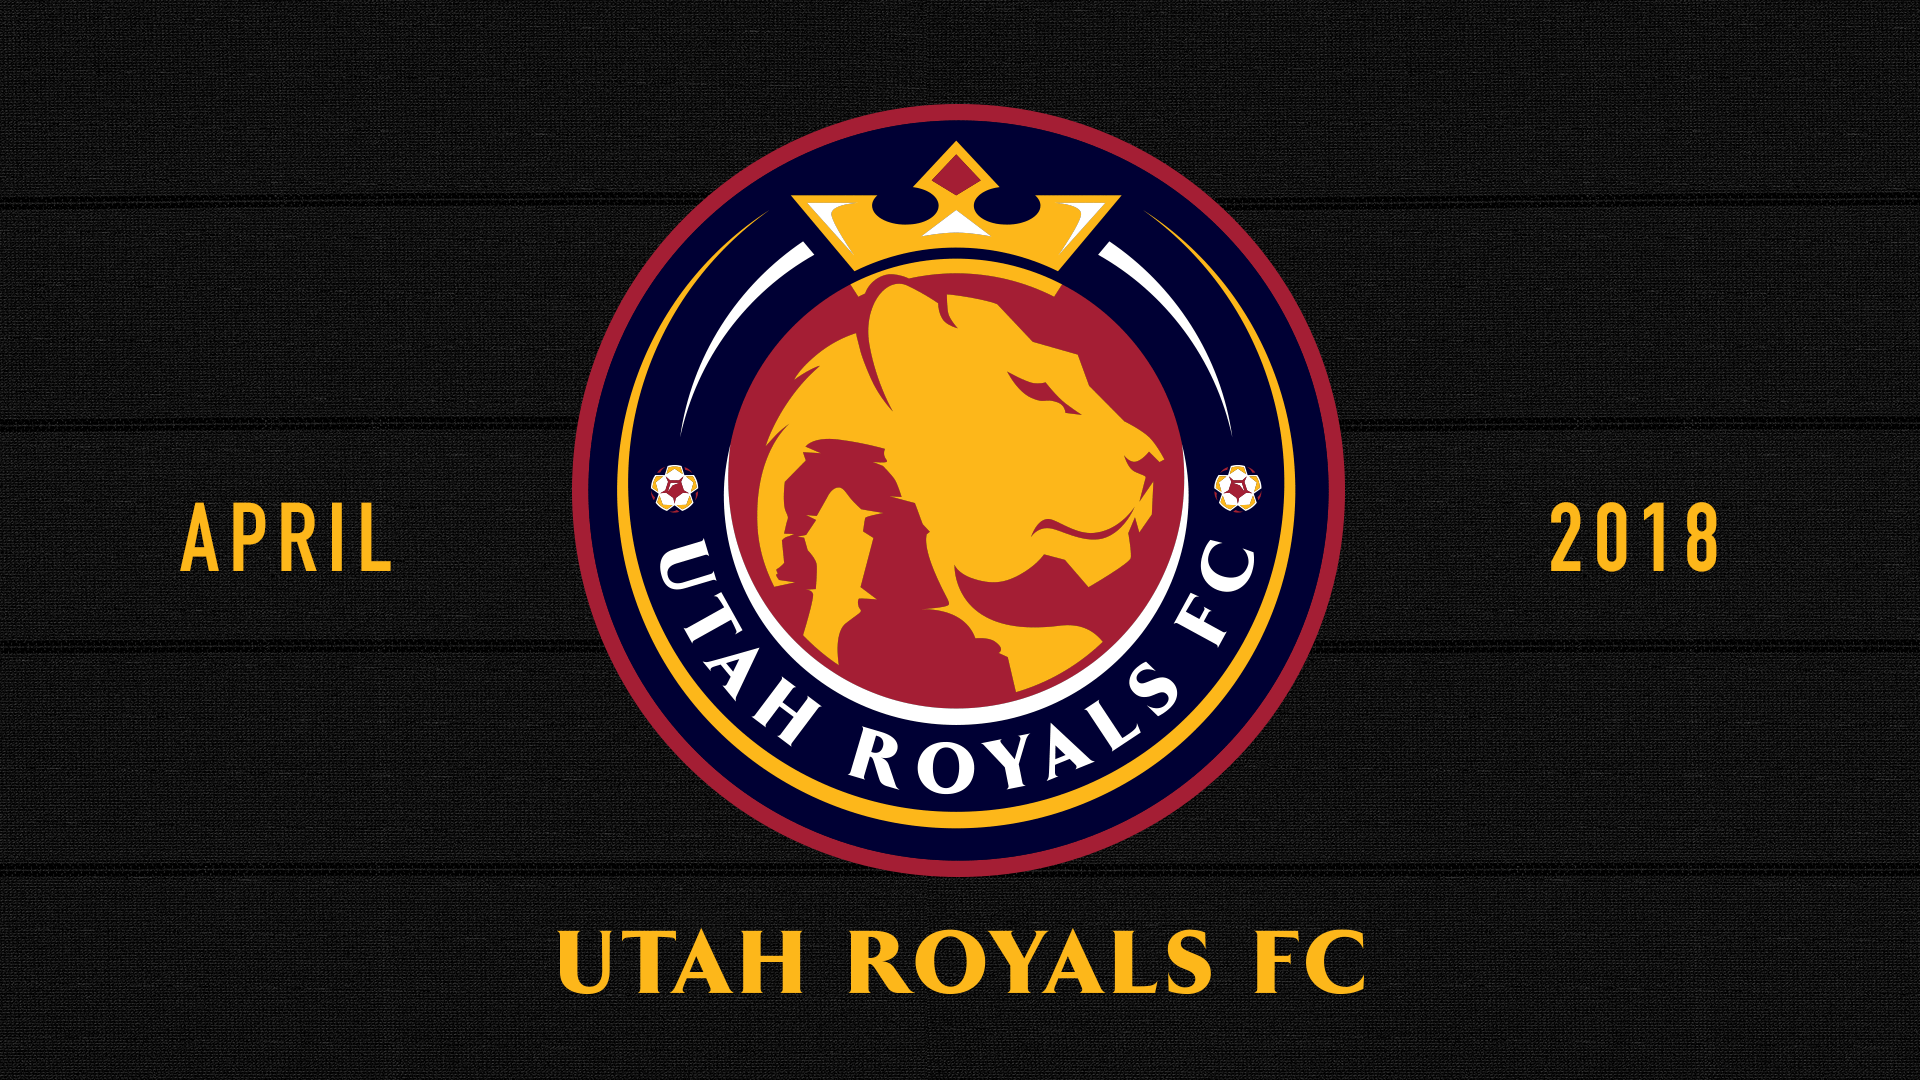 Who are the Utah Royals?